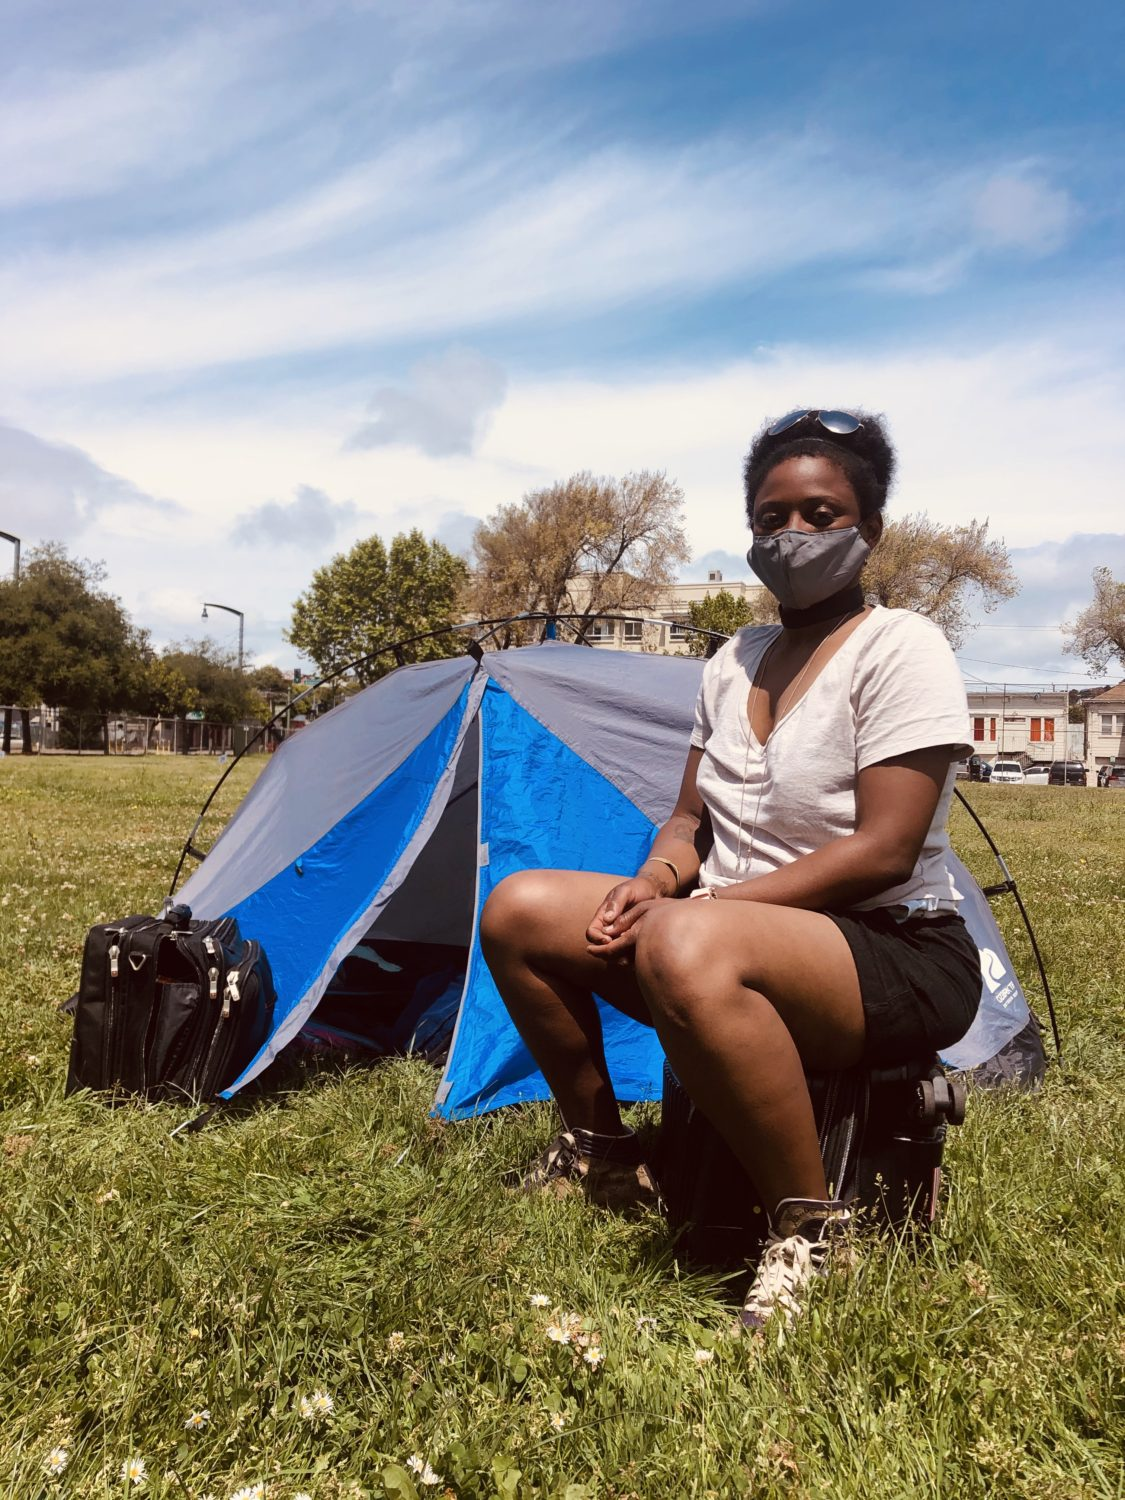 Beds-4-Bayview-MLK-Park-resident-Tamara, Community seizes MLK Park as immediate COVID relief for unhoused neighbors, Local News & Views